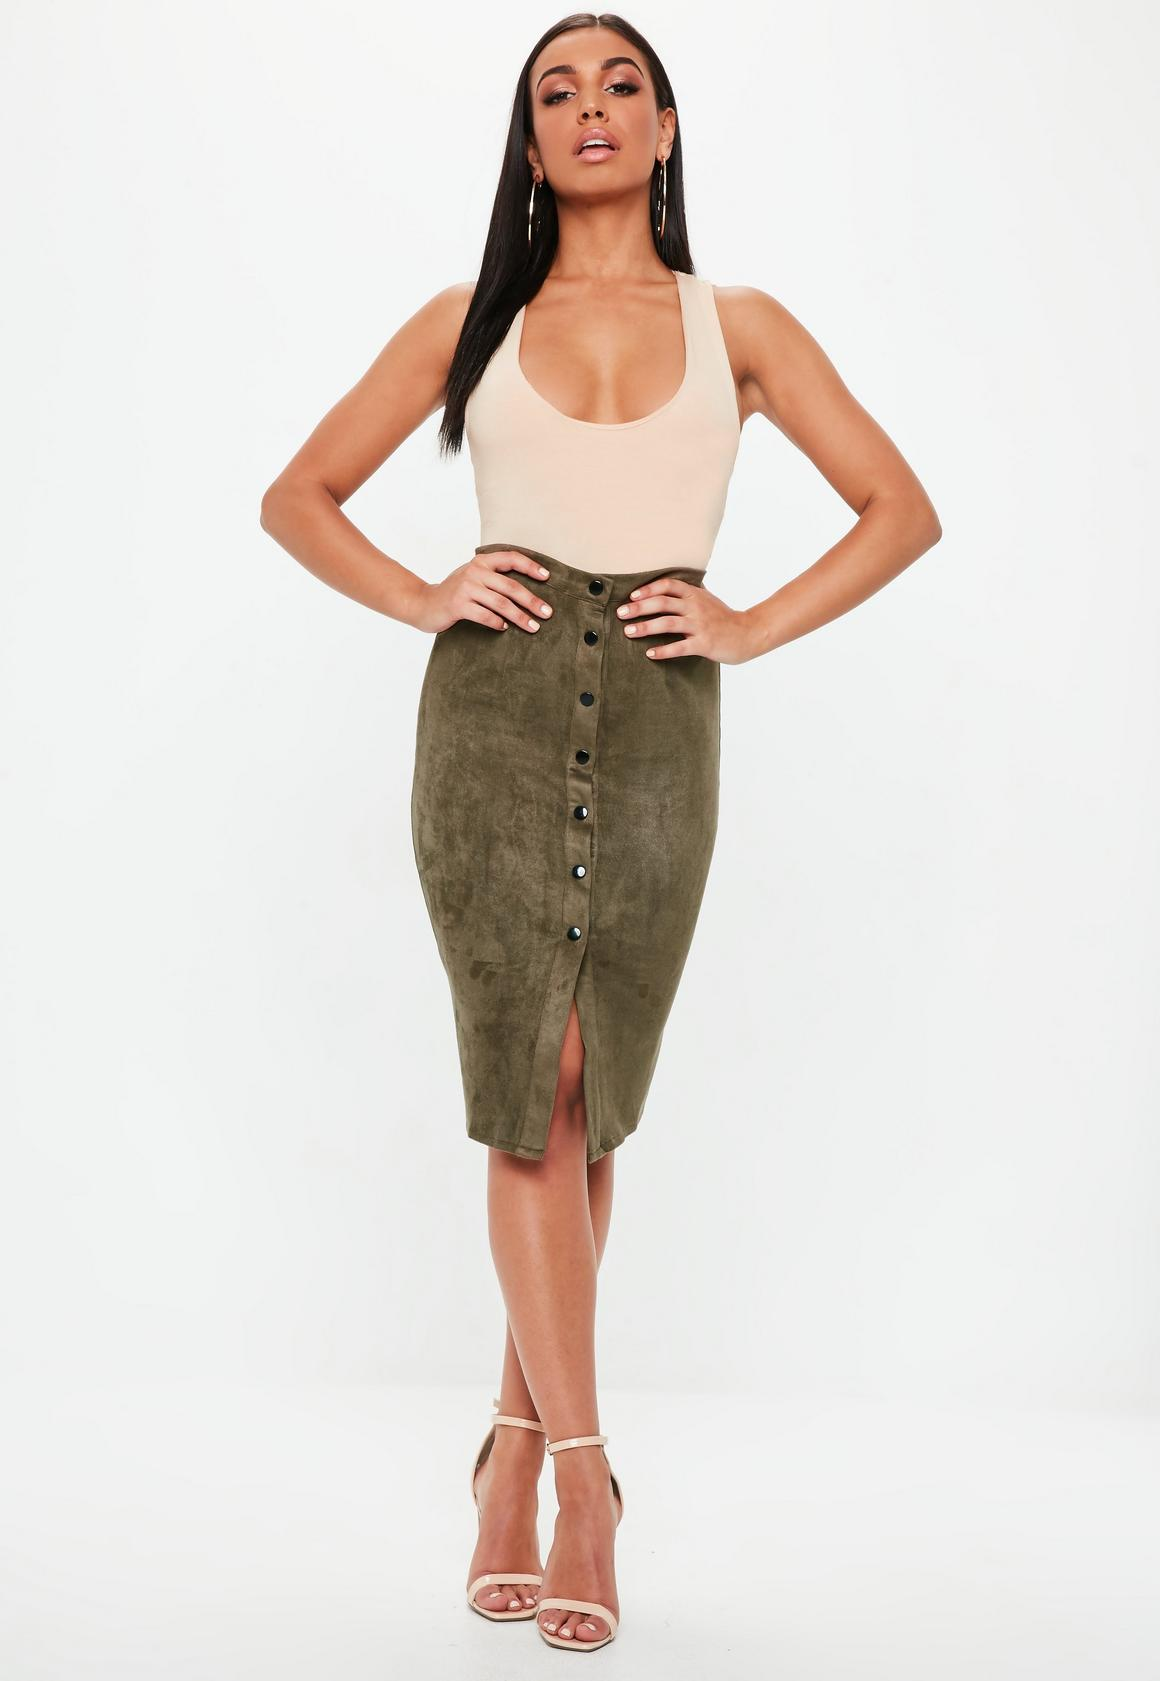 Suede Skirts - Women's Faux Suede Skirts Online | Missguided